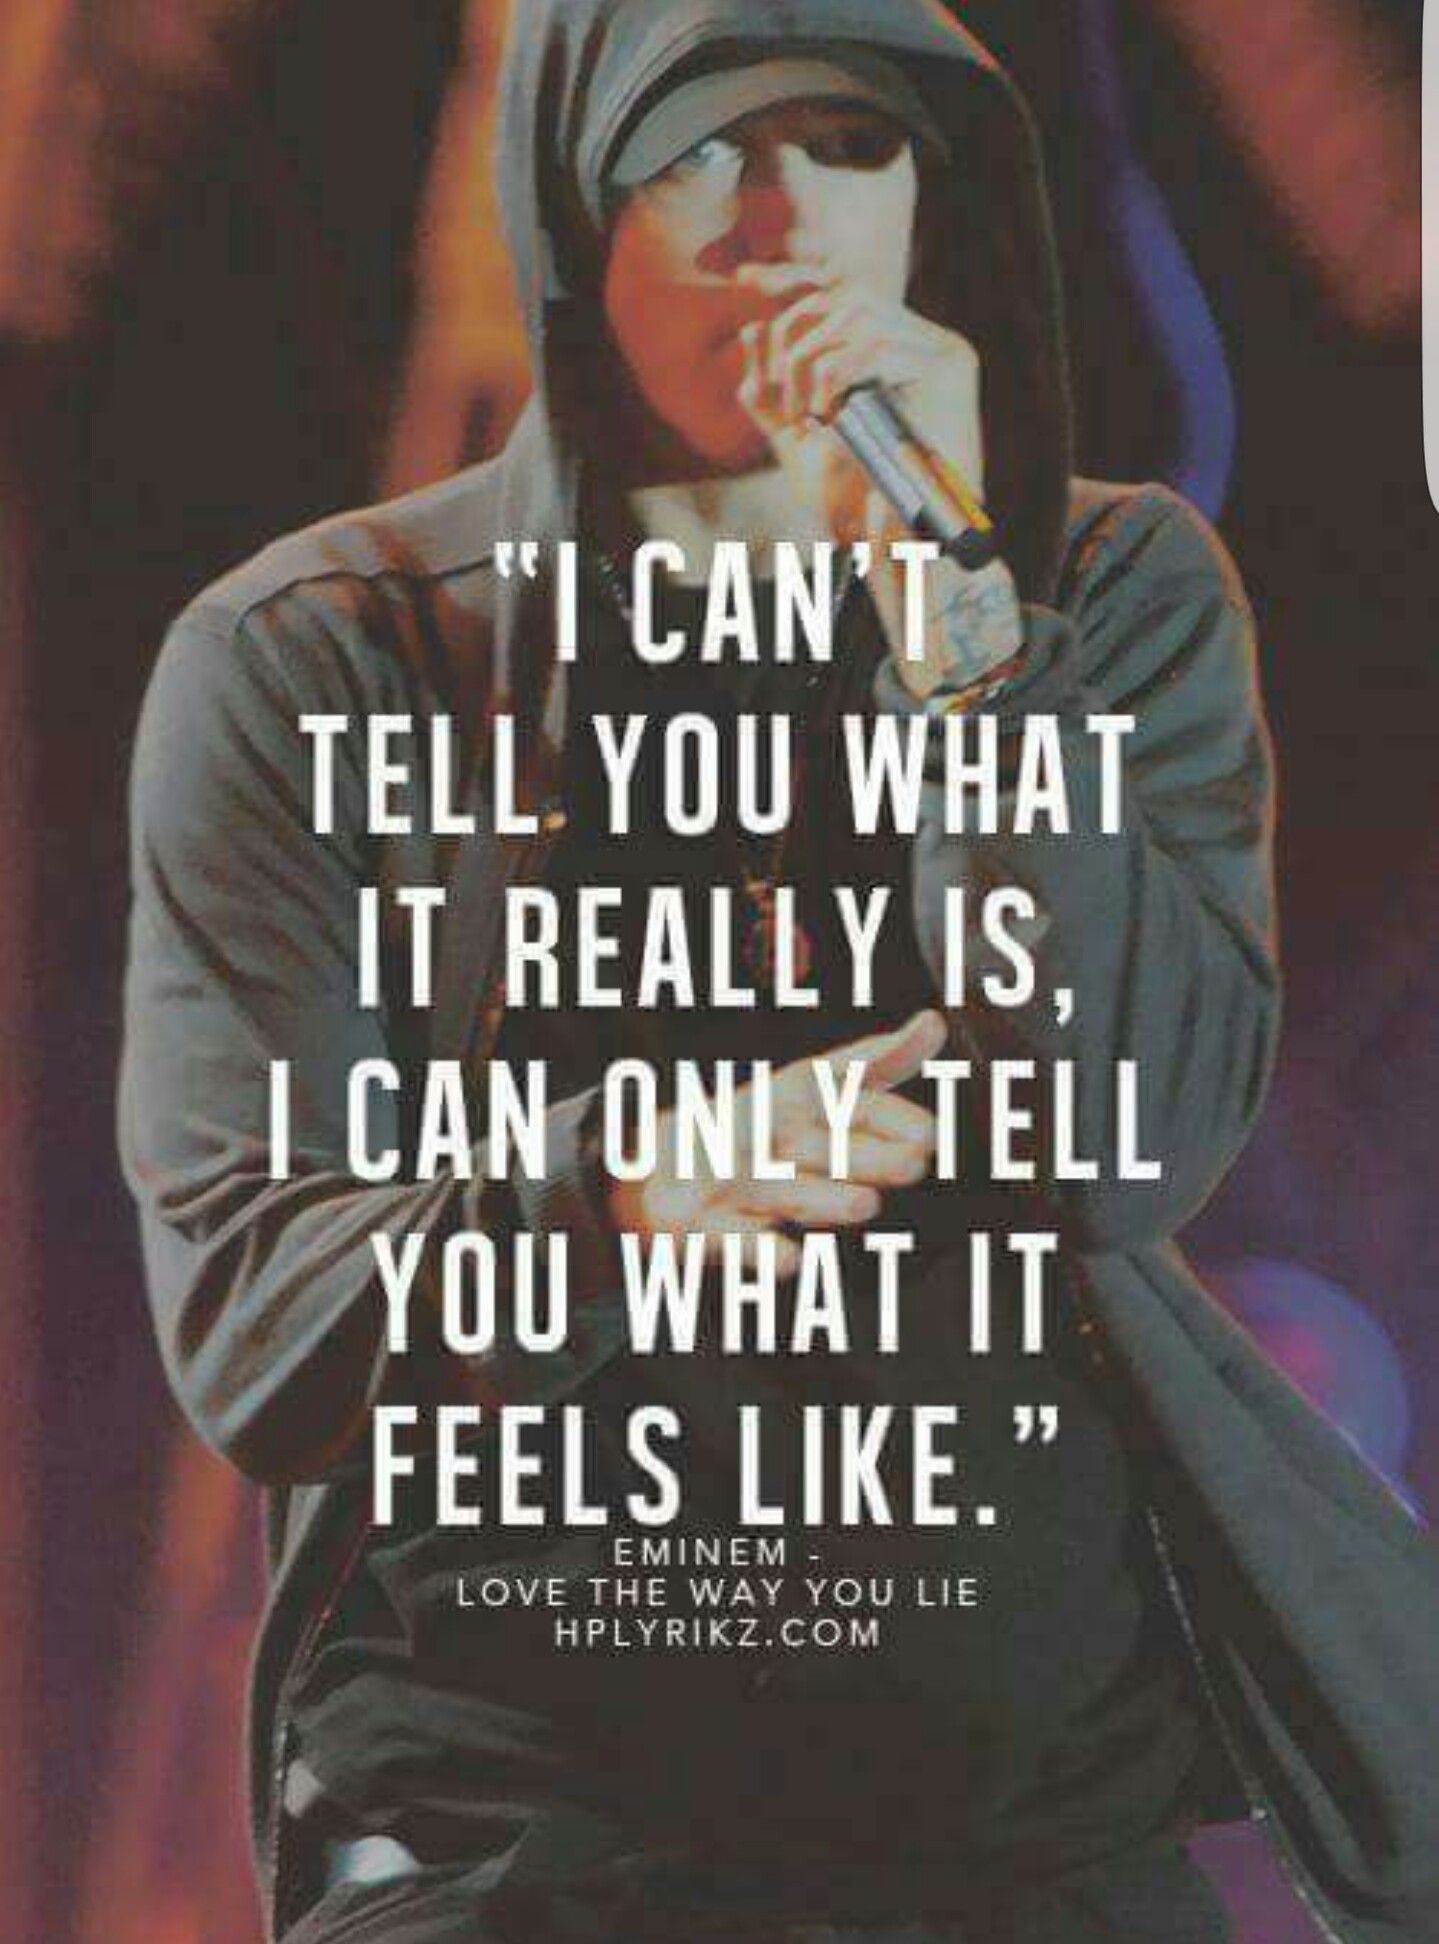 Pin By Ann Gelinas On Marshall Mathers Shady Emin3m Eminem Quotes Rapper Quotes Rap Quotes